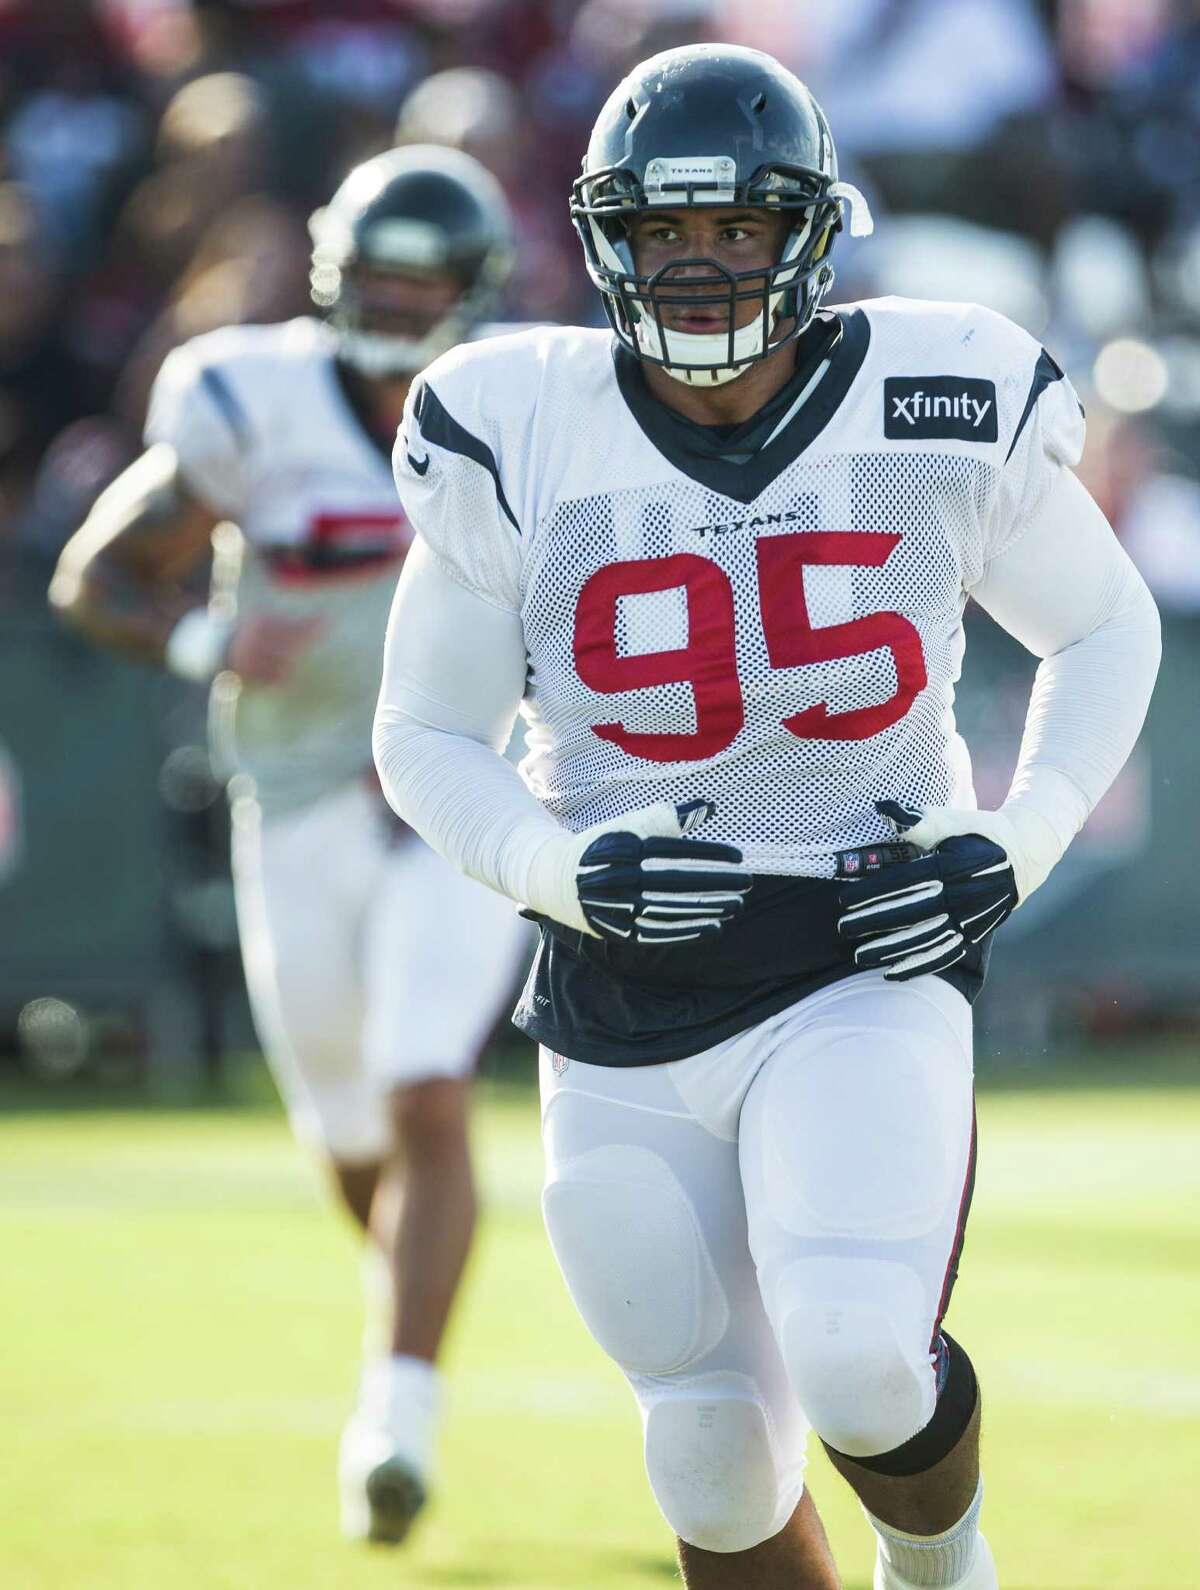 The former Rice standout had arguably the most impactful defensive performance, forcing 49ers running back Carlos Hyde to fumble with the turnover leading to a John Simon recovery and touchdown. Covington's combination of speed and power makes him an extremely difficult blocking assignment.